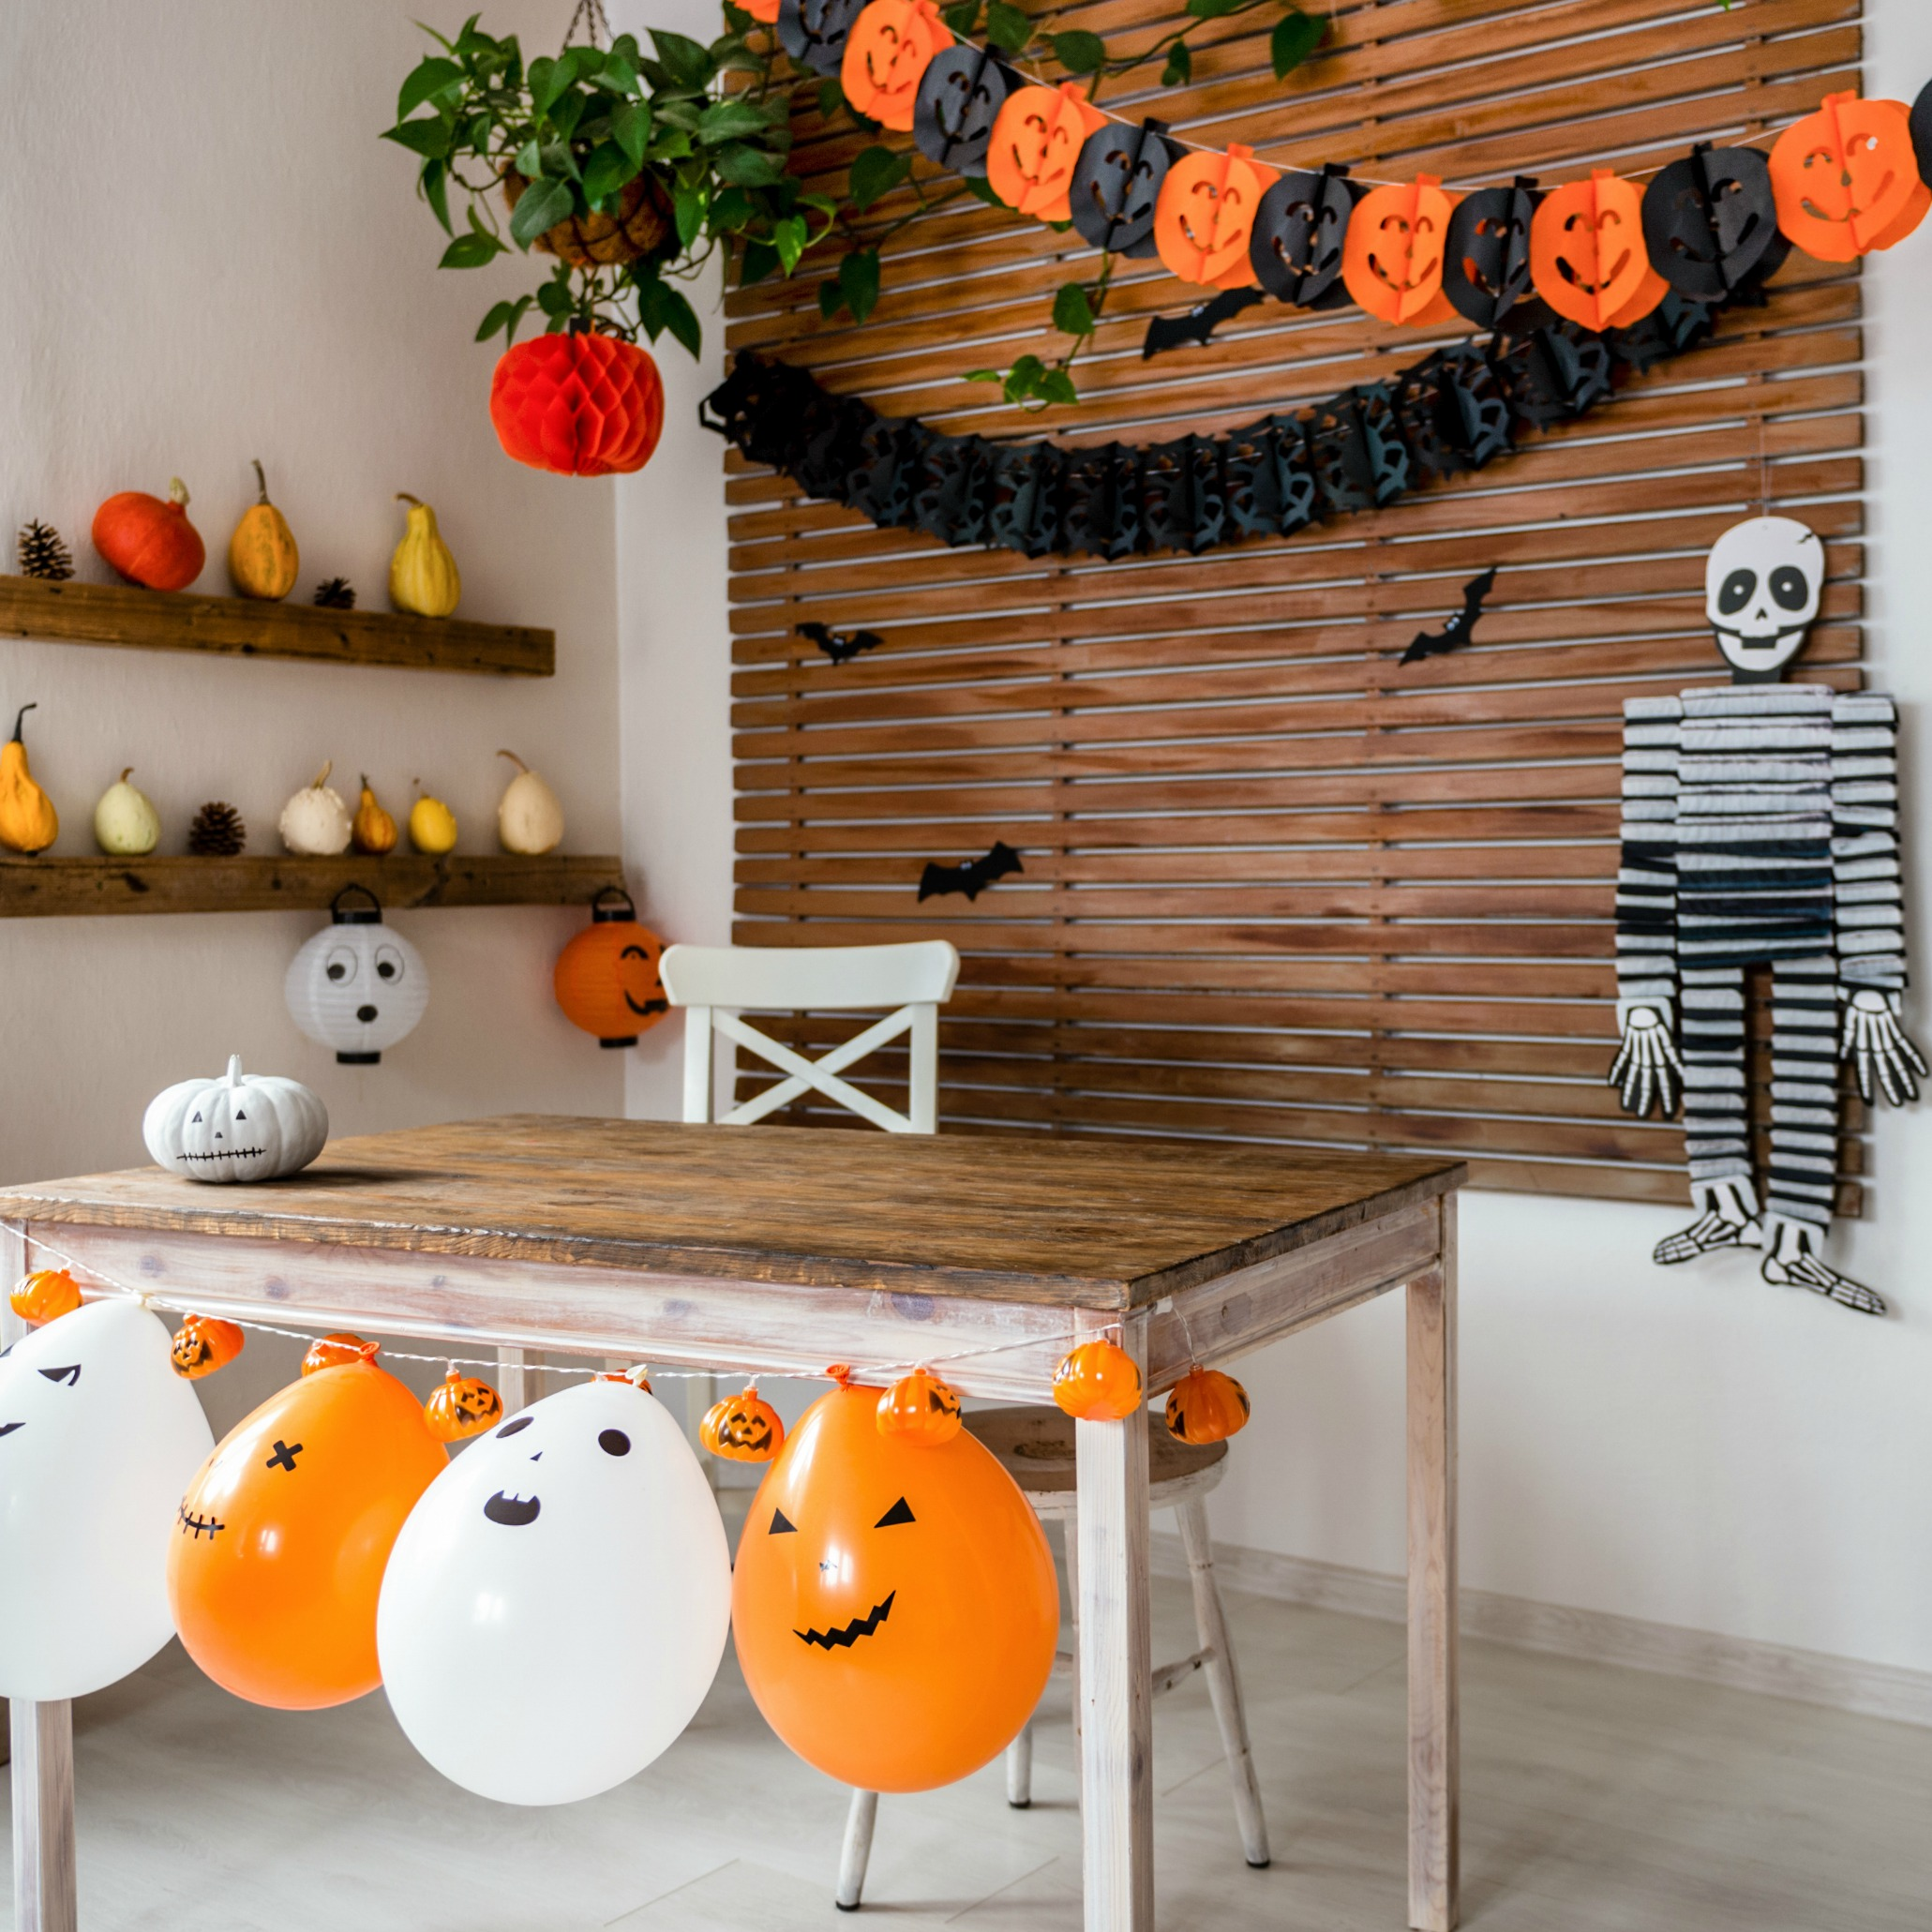 5 Tips For Having The Perfect Cold Snowy Indoor Halloween The